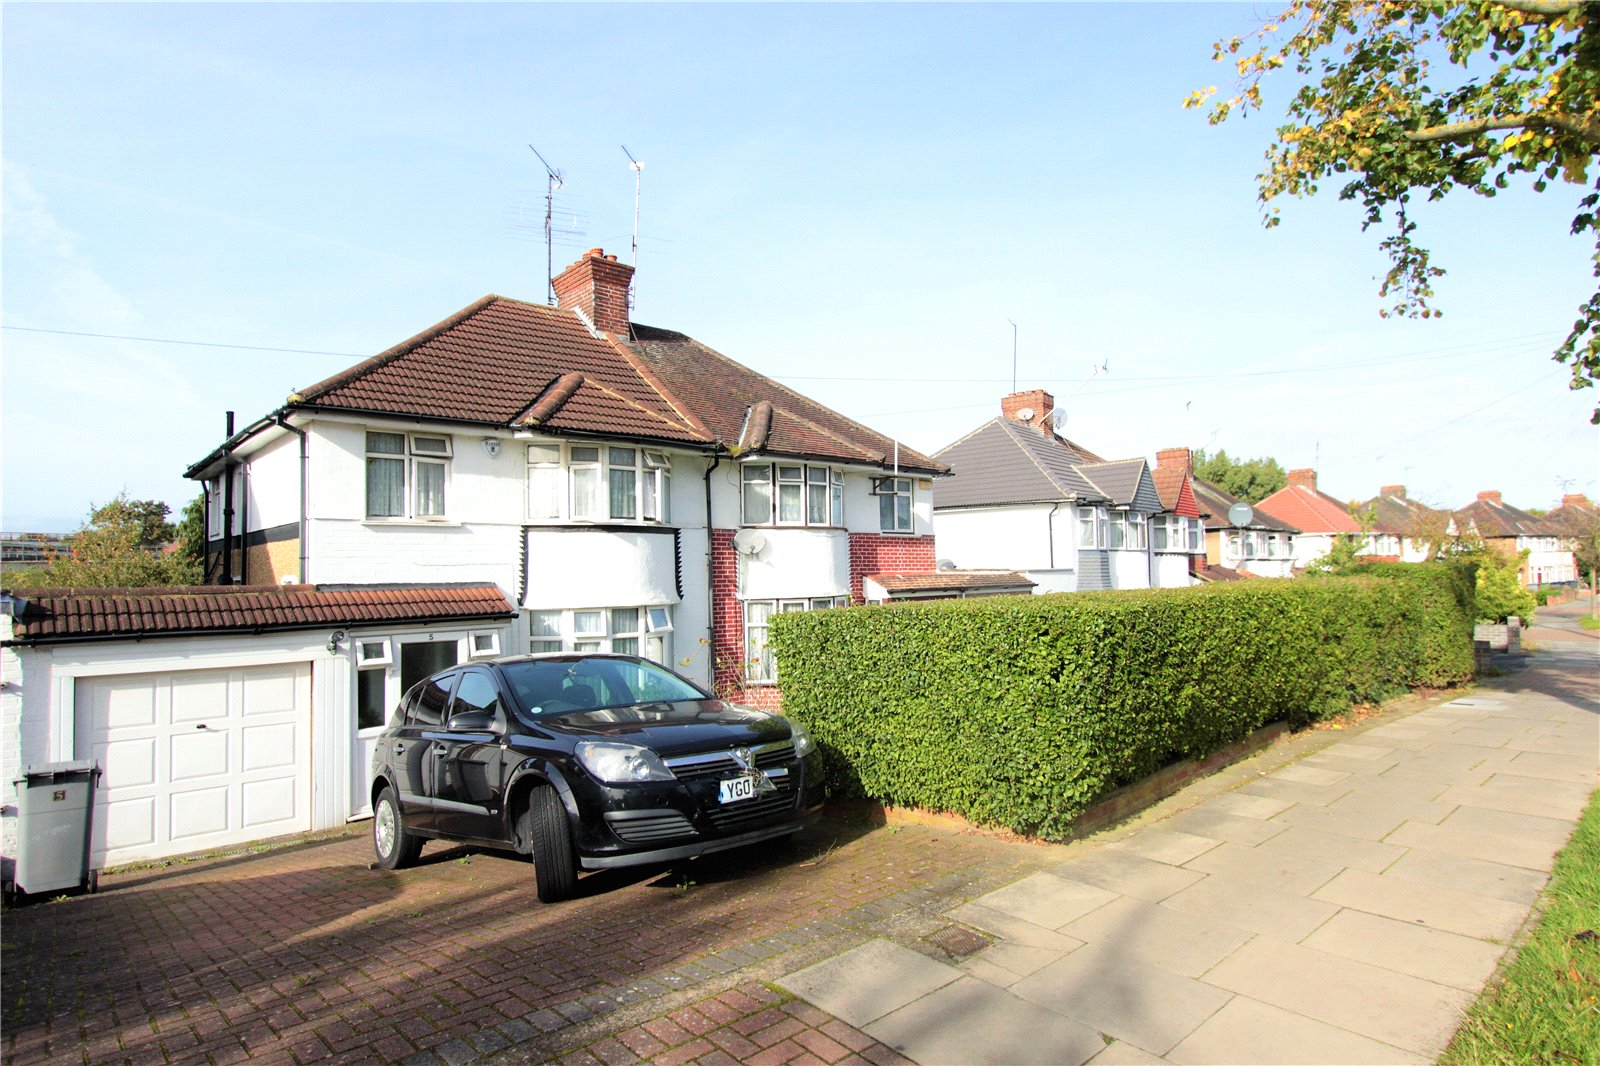 3 Bedrooms Semi Detached House for sale in Uxendon Hill Wembley HA9